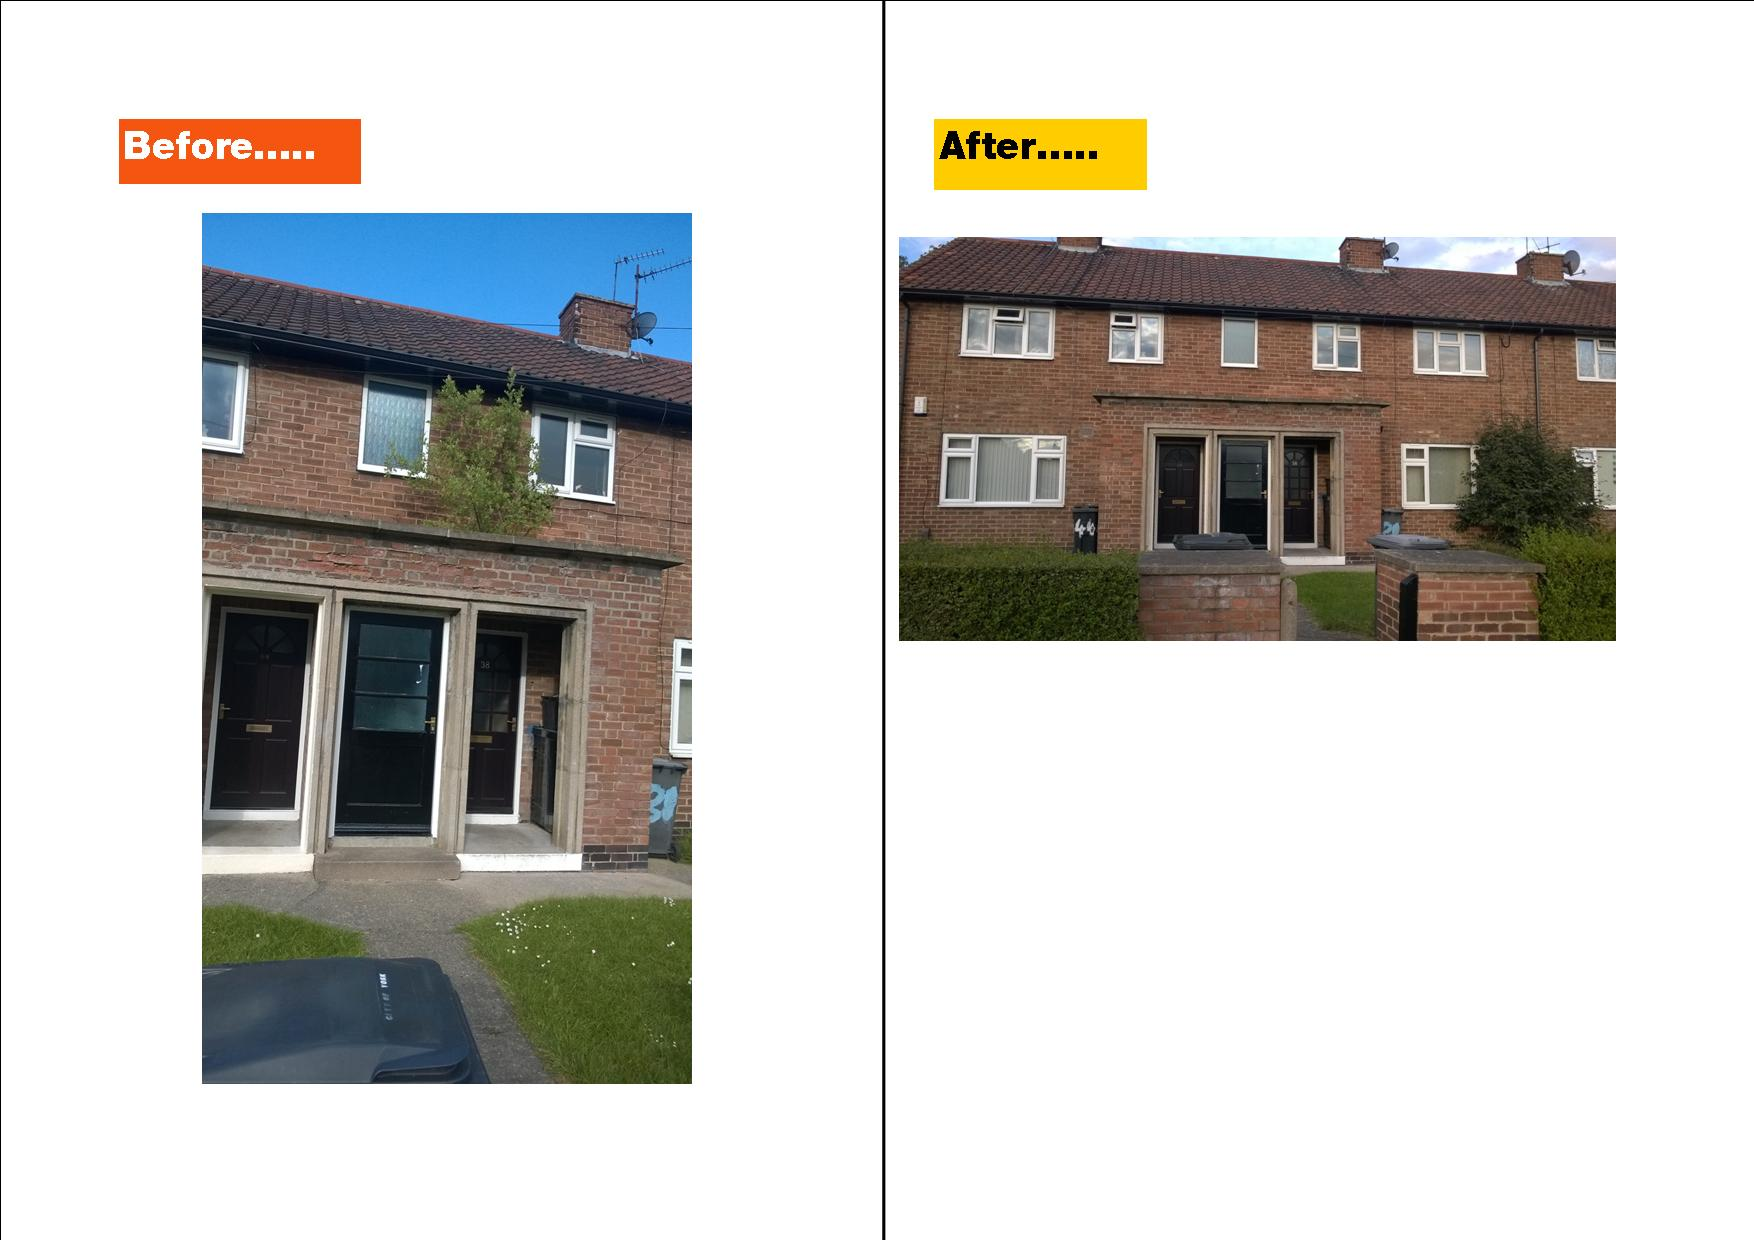 Before and after intervention by your local Lib Dem councillors